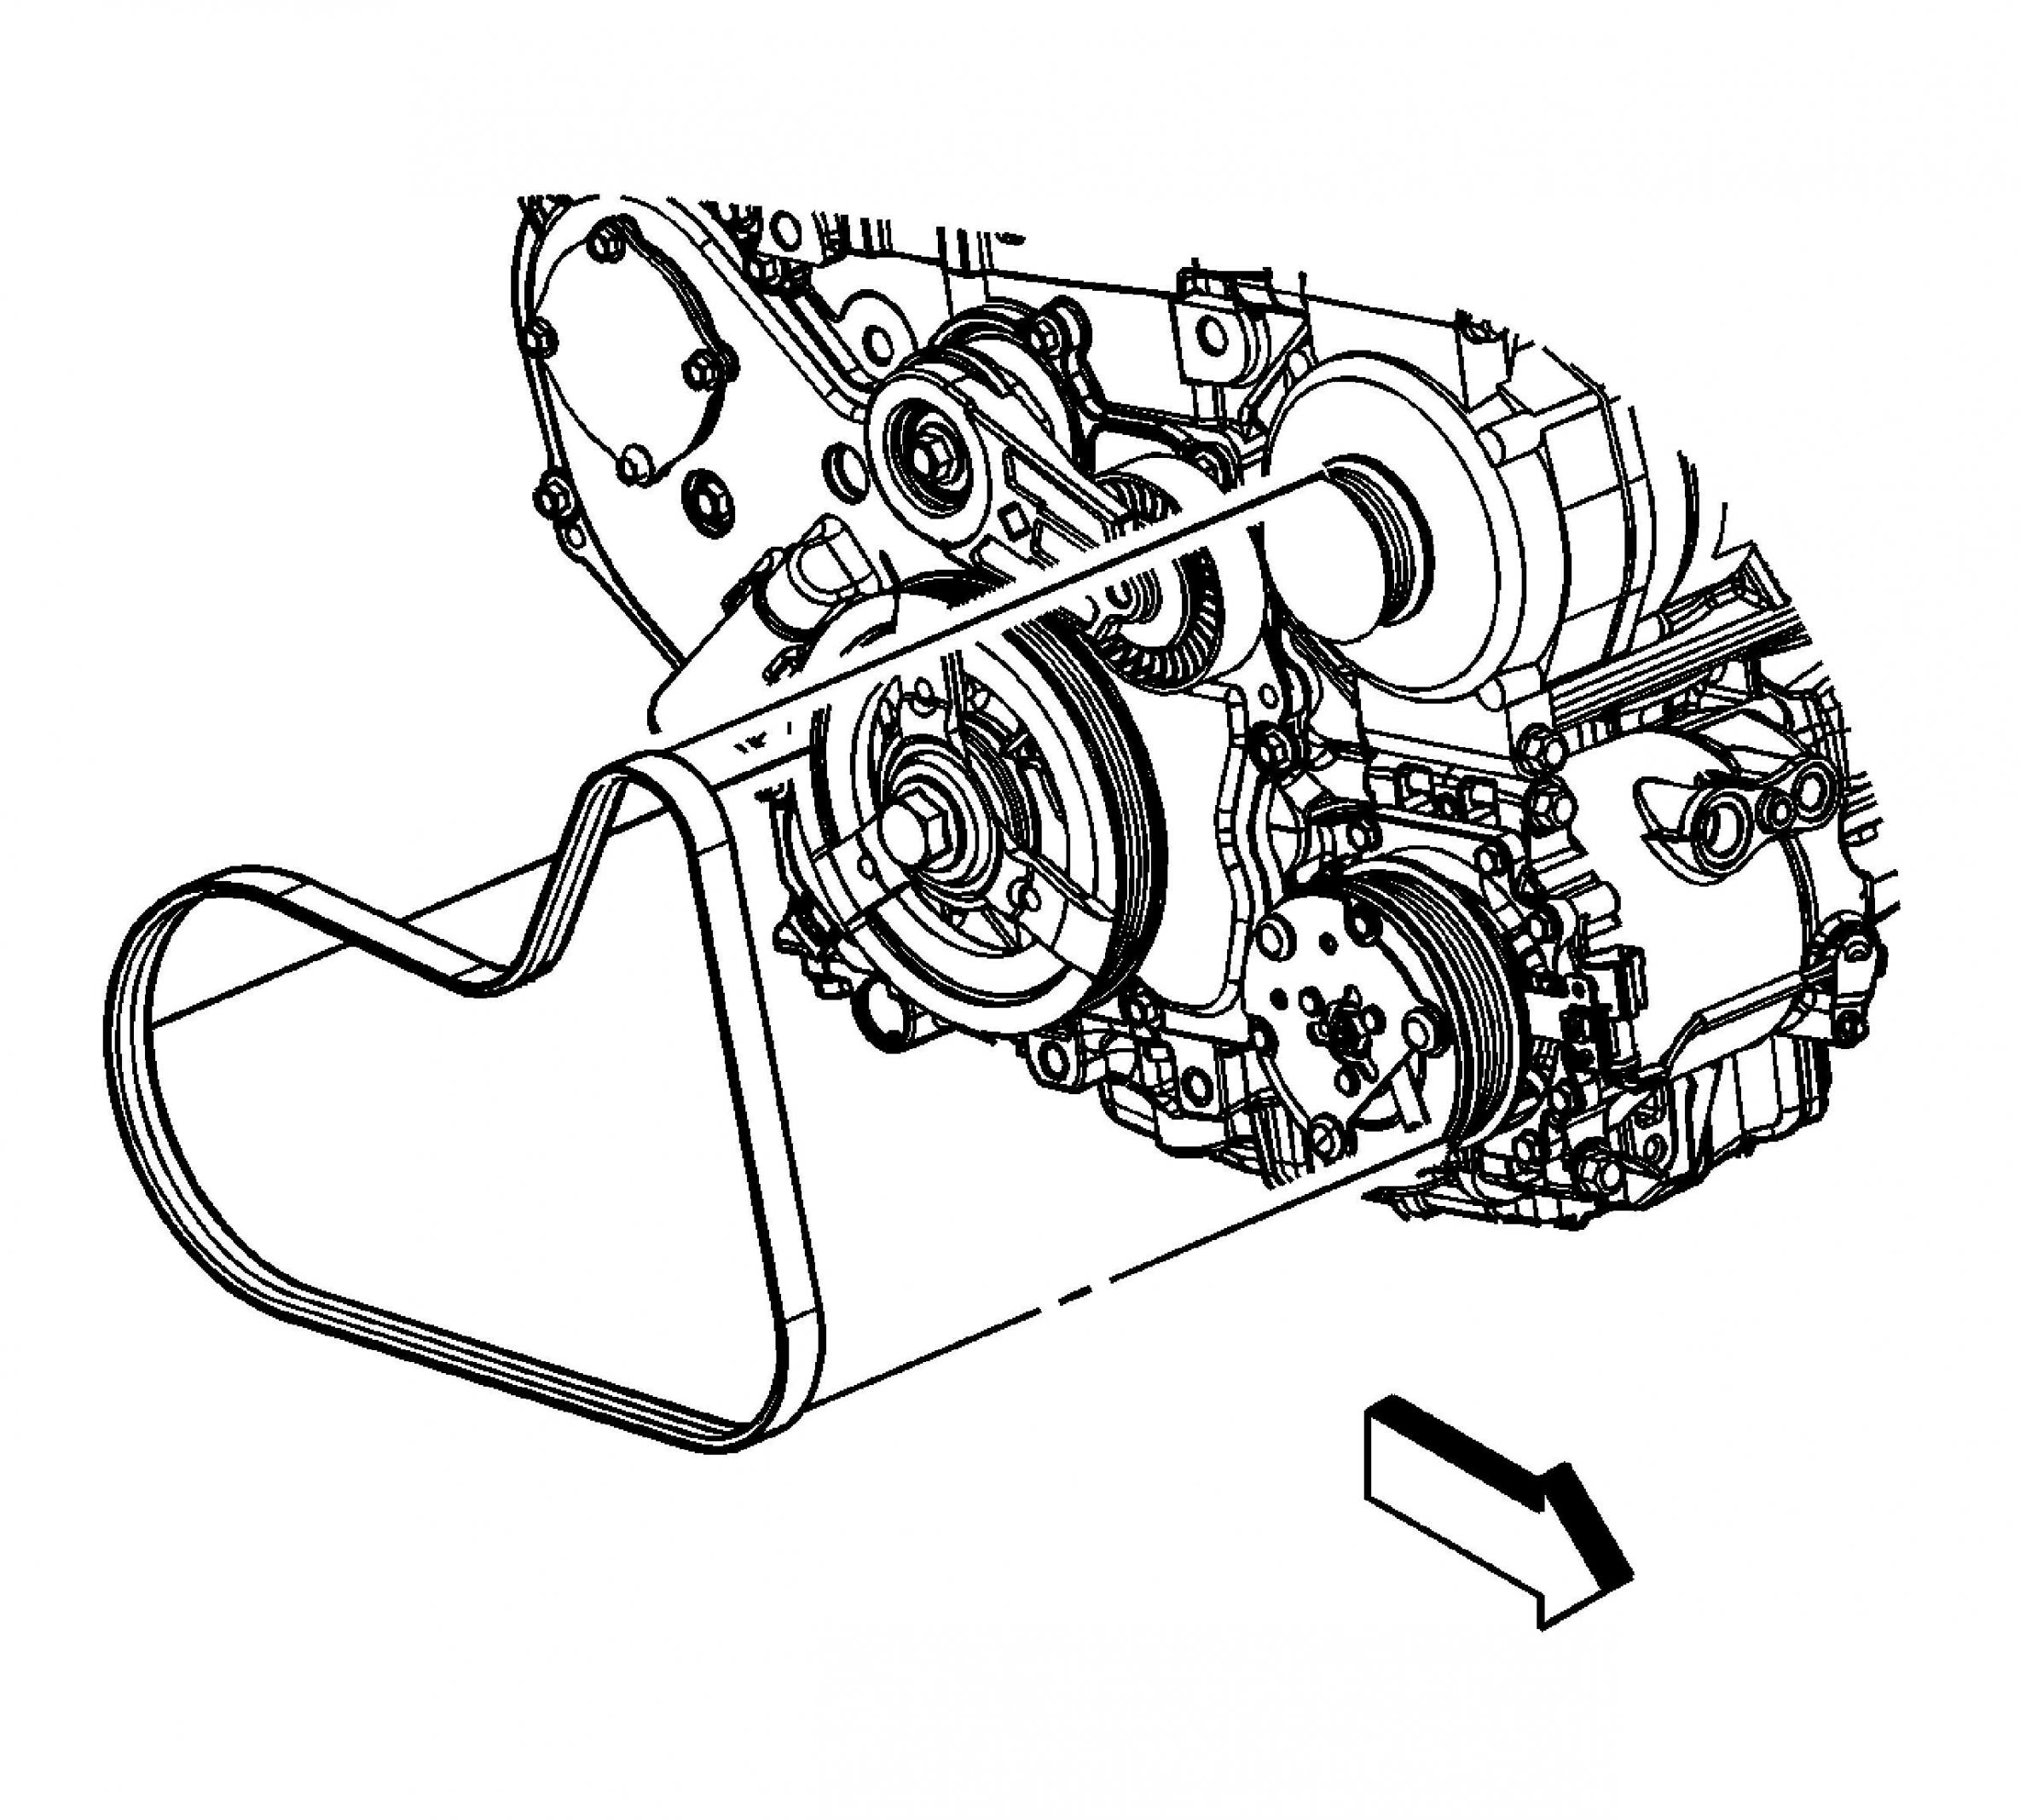 2010 Hhr Engine Diagram Auto Electrical Wiring Compartment 2005 Cobalt Belt Routing Chevrolet Forum